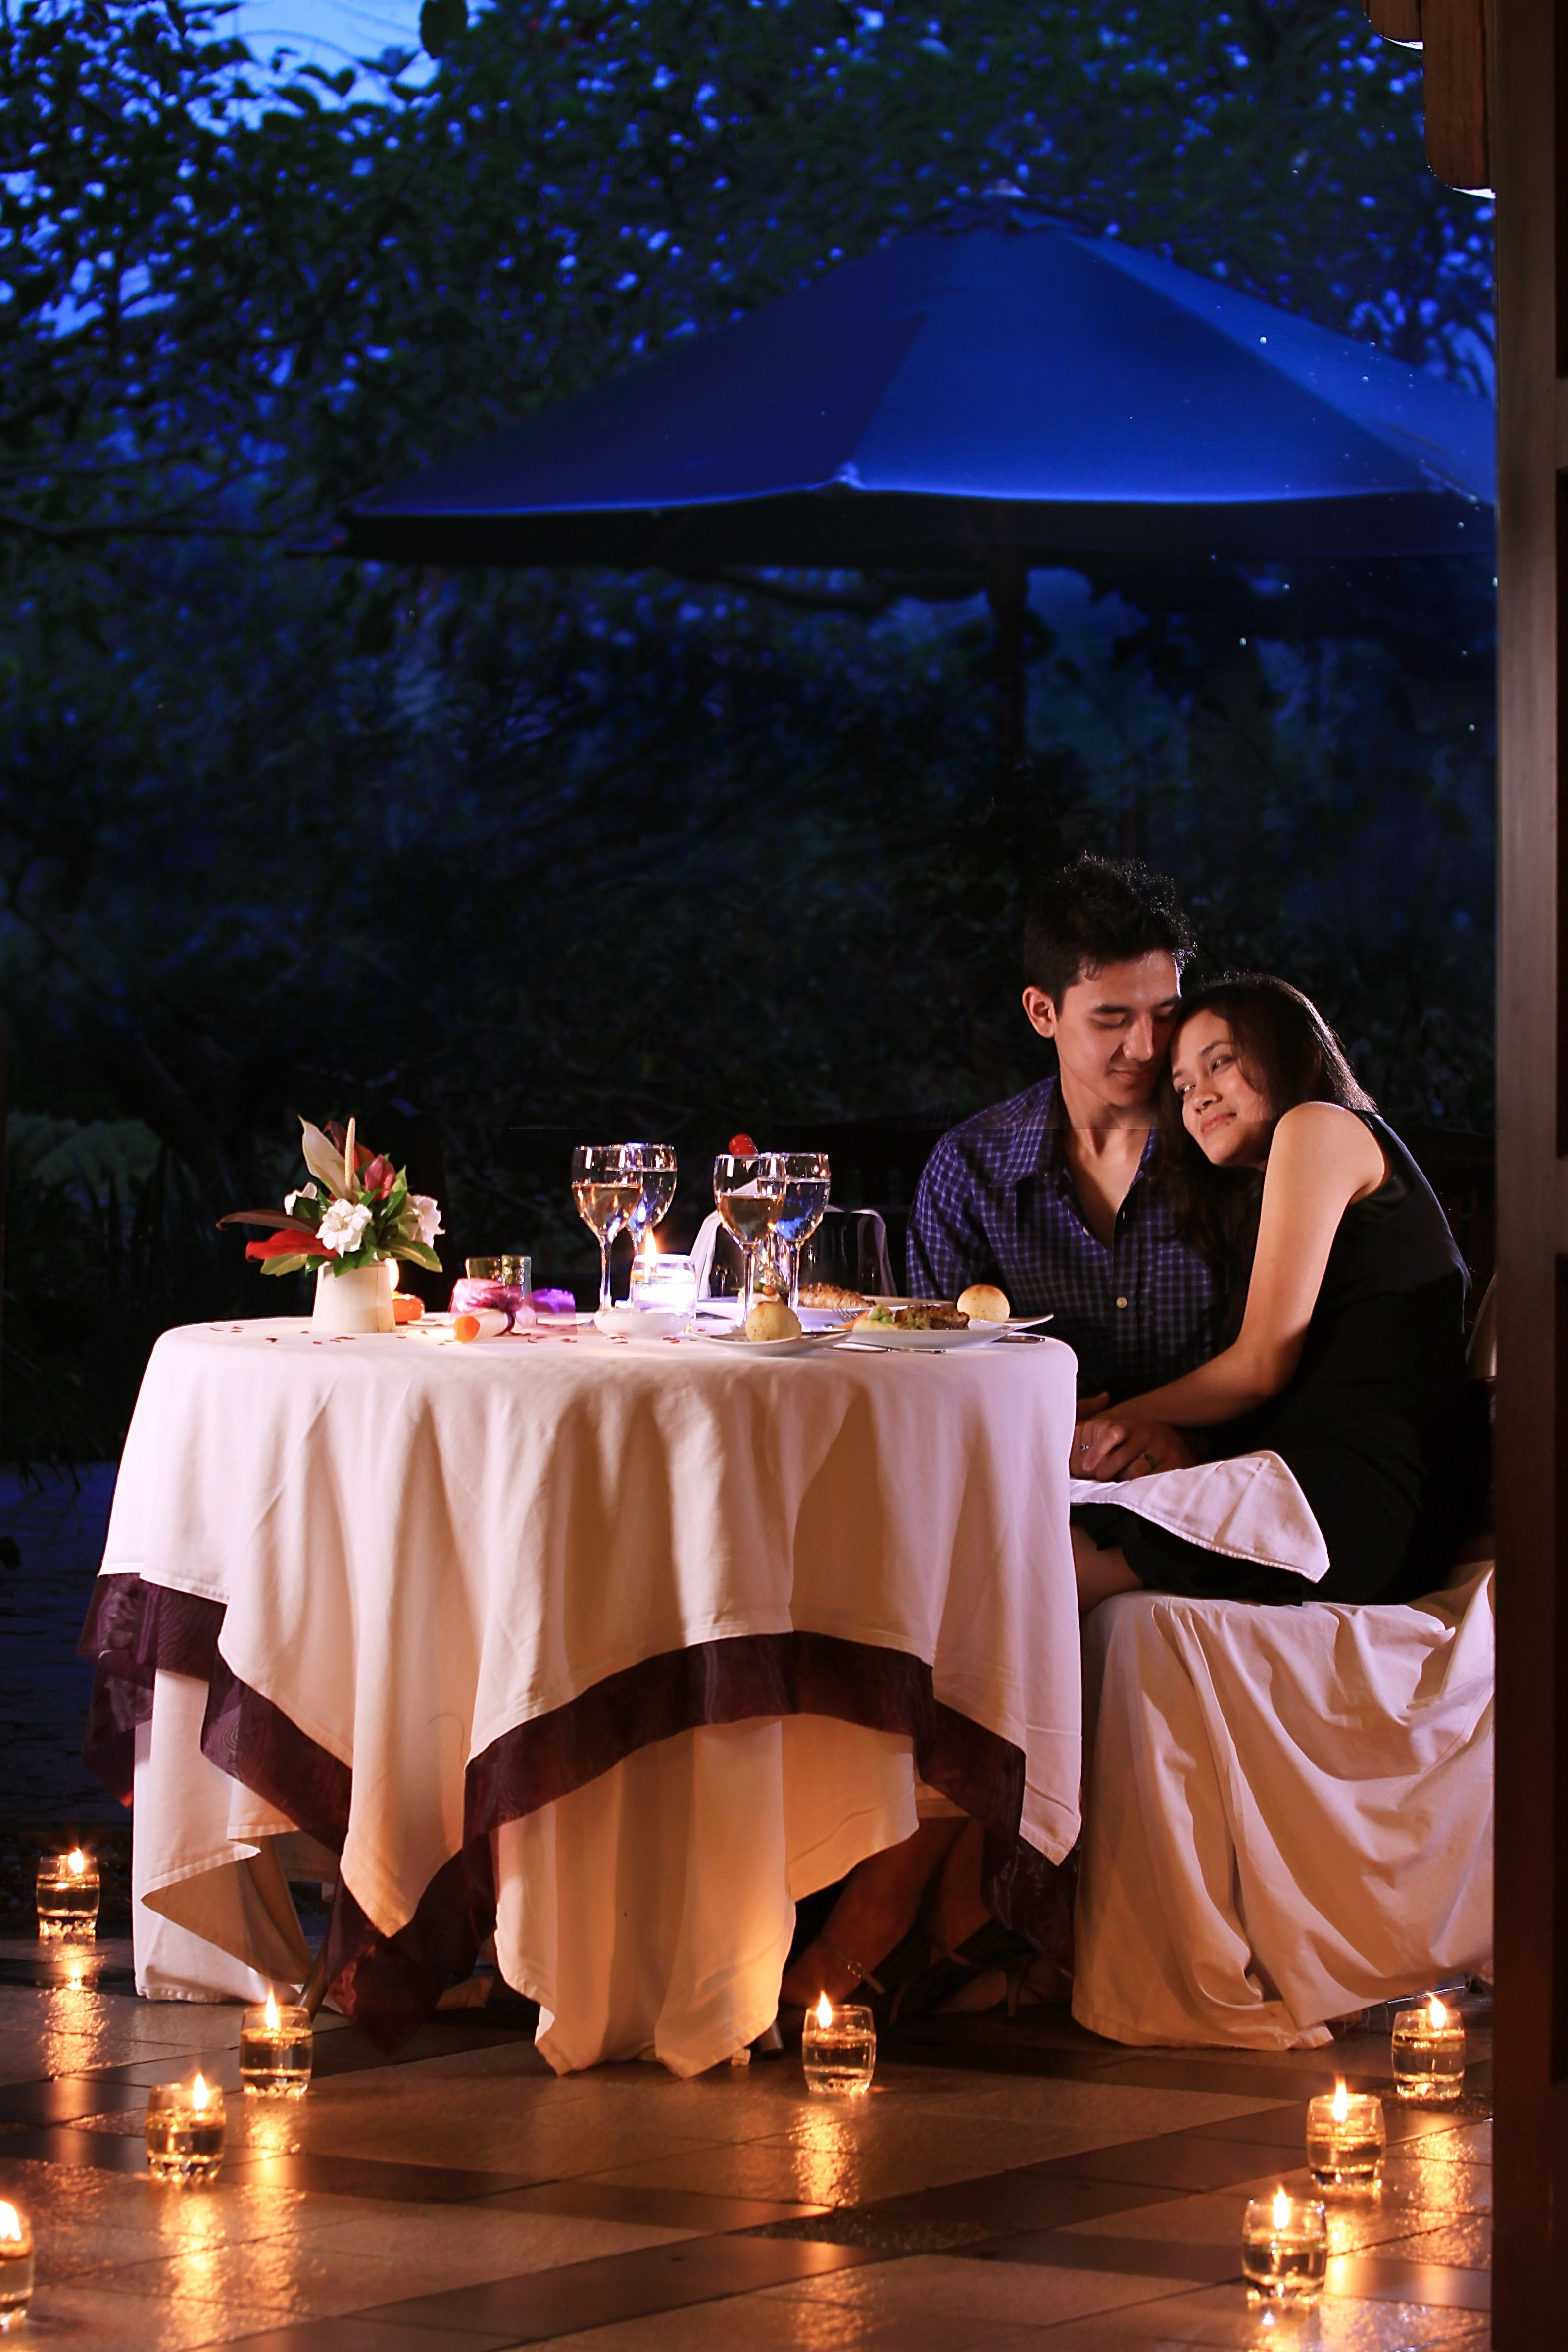 Candle night dinner couple candle night dinner couple